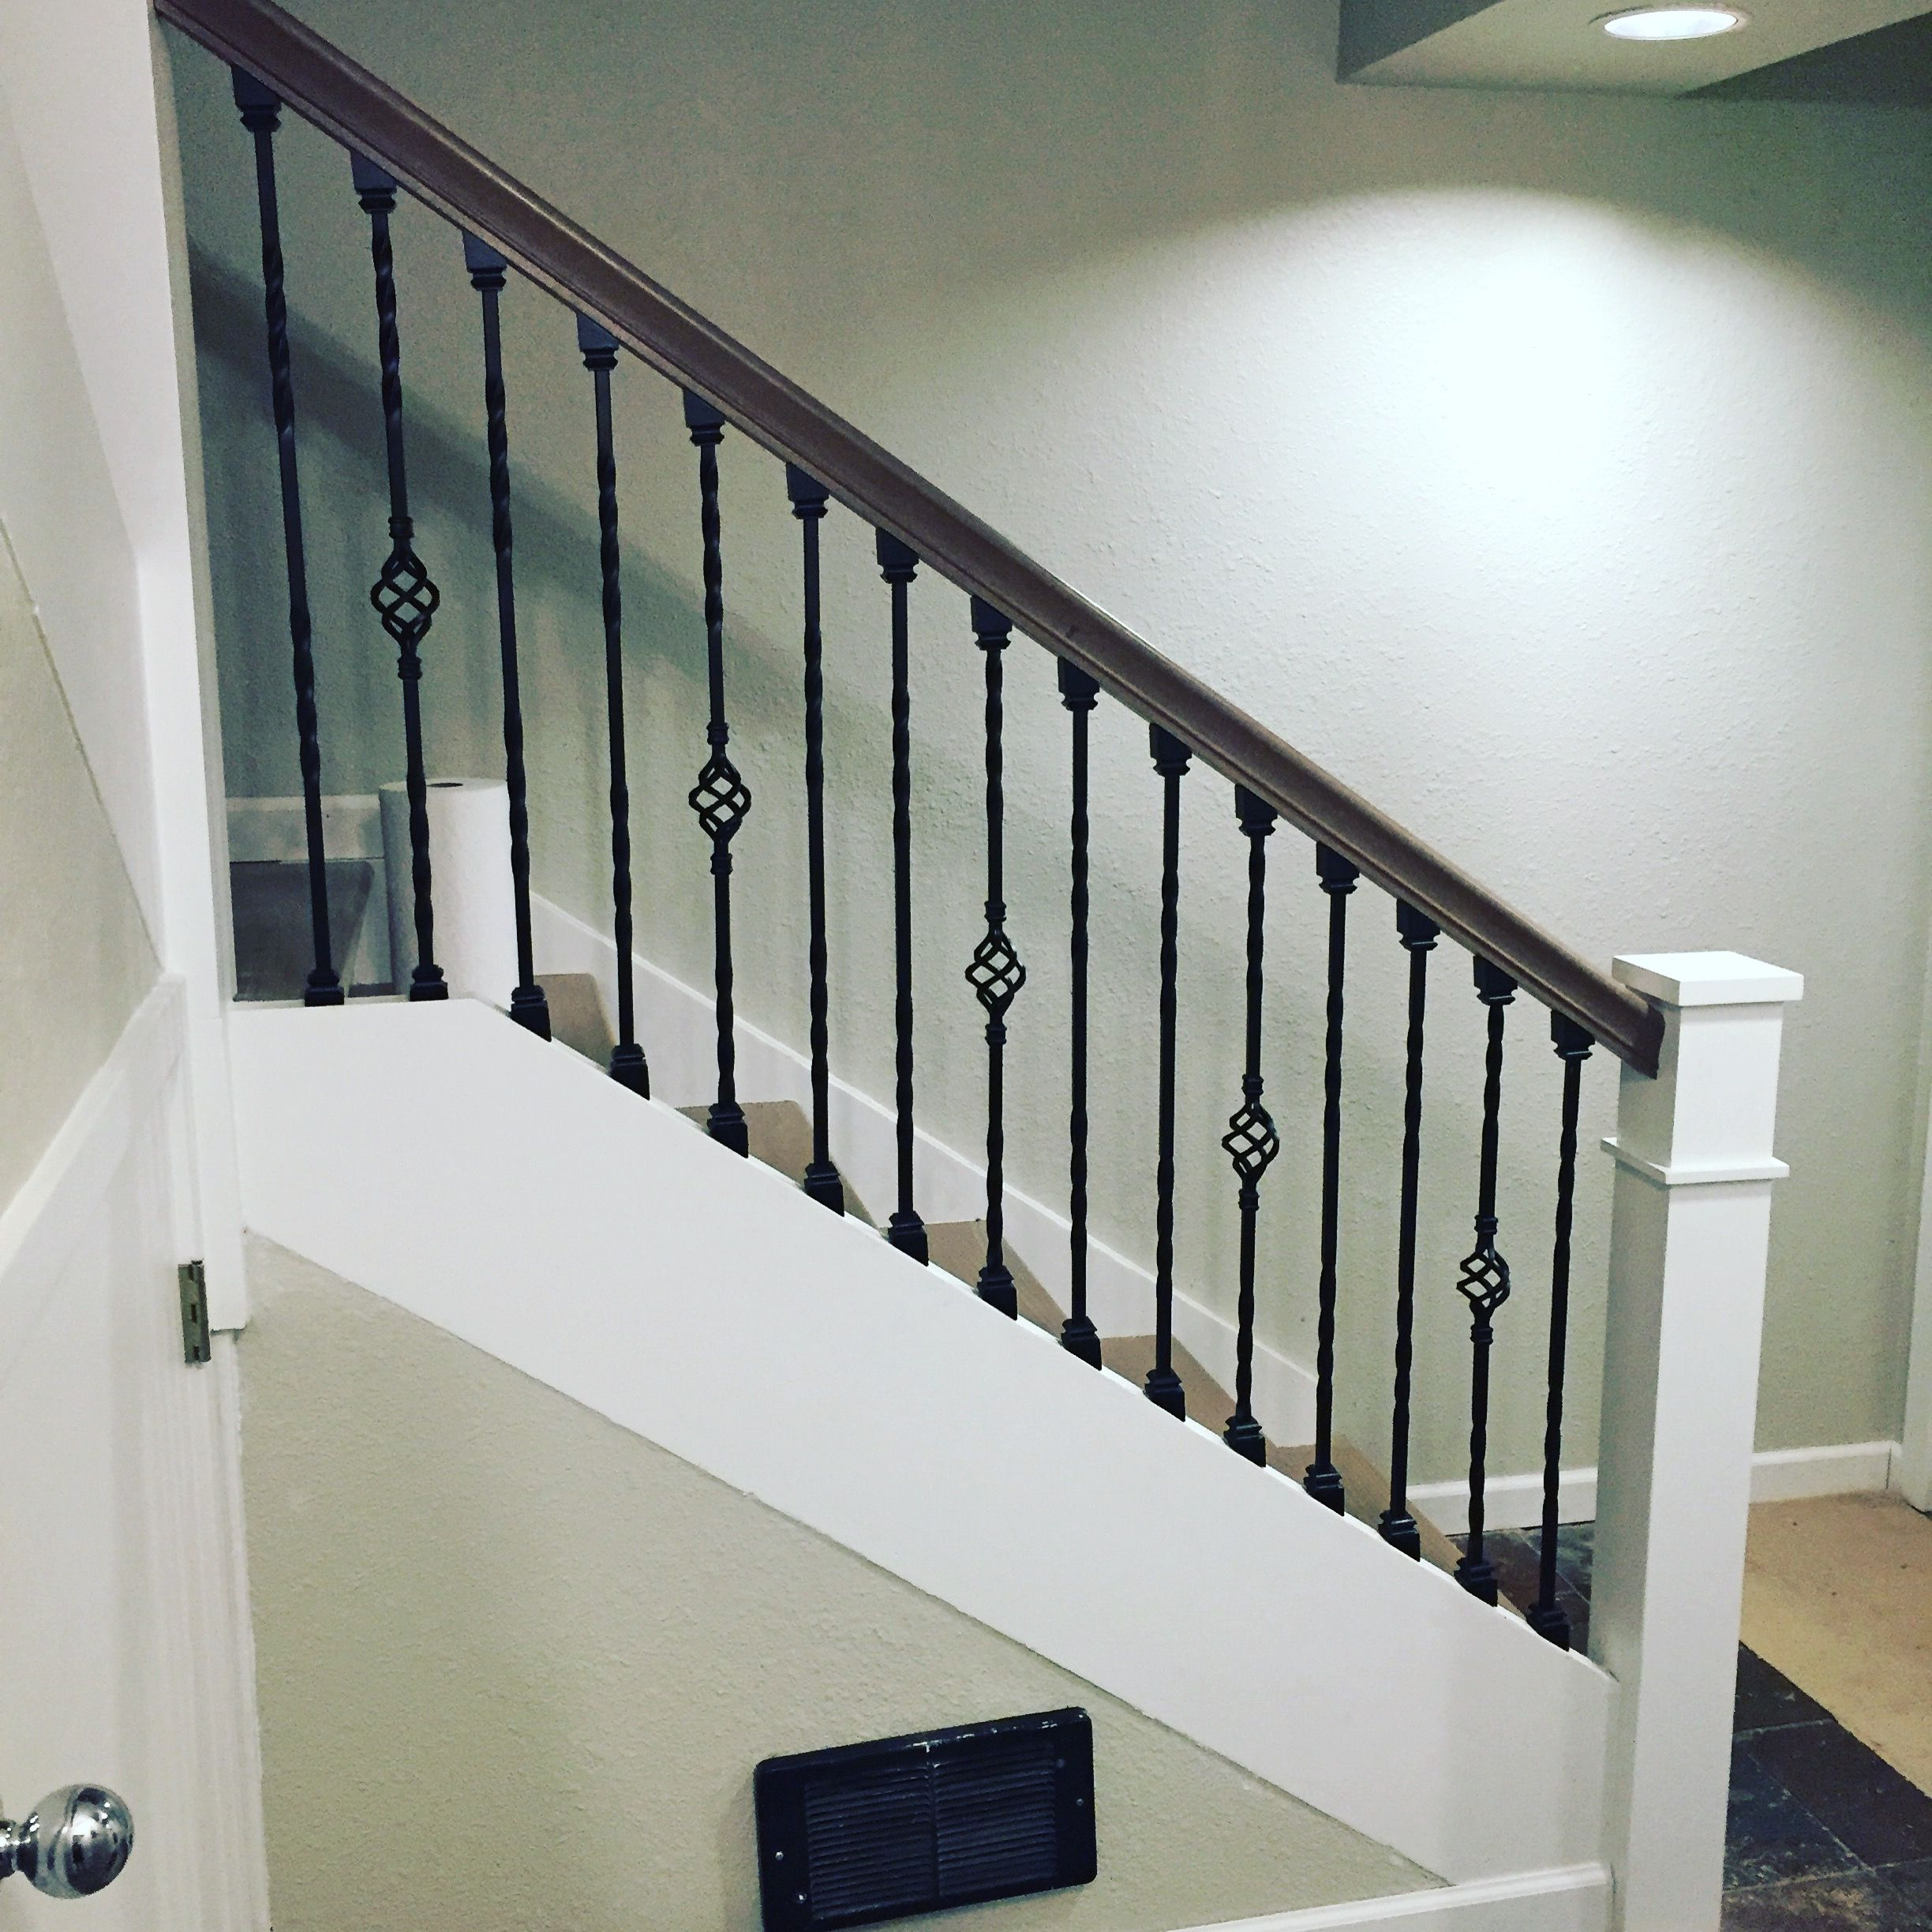 Charmant Wrought Iron Stair Balusters With Double Twist And Single Basket. White  Newell Posts And Custom White Oak Gray Stained Handrail And Stair Treads